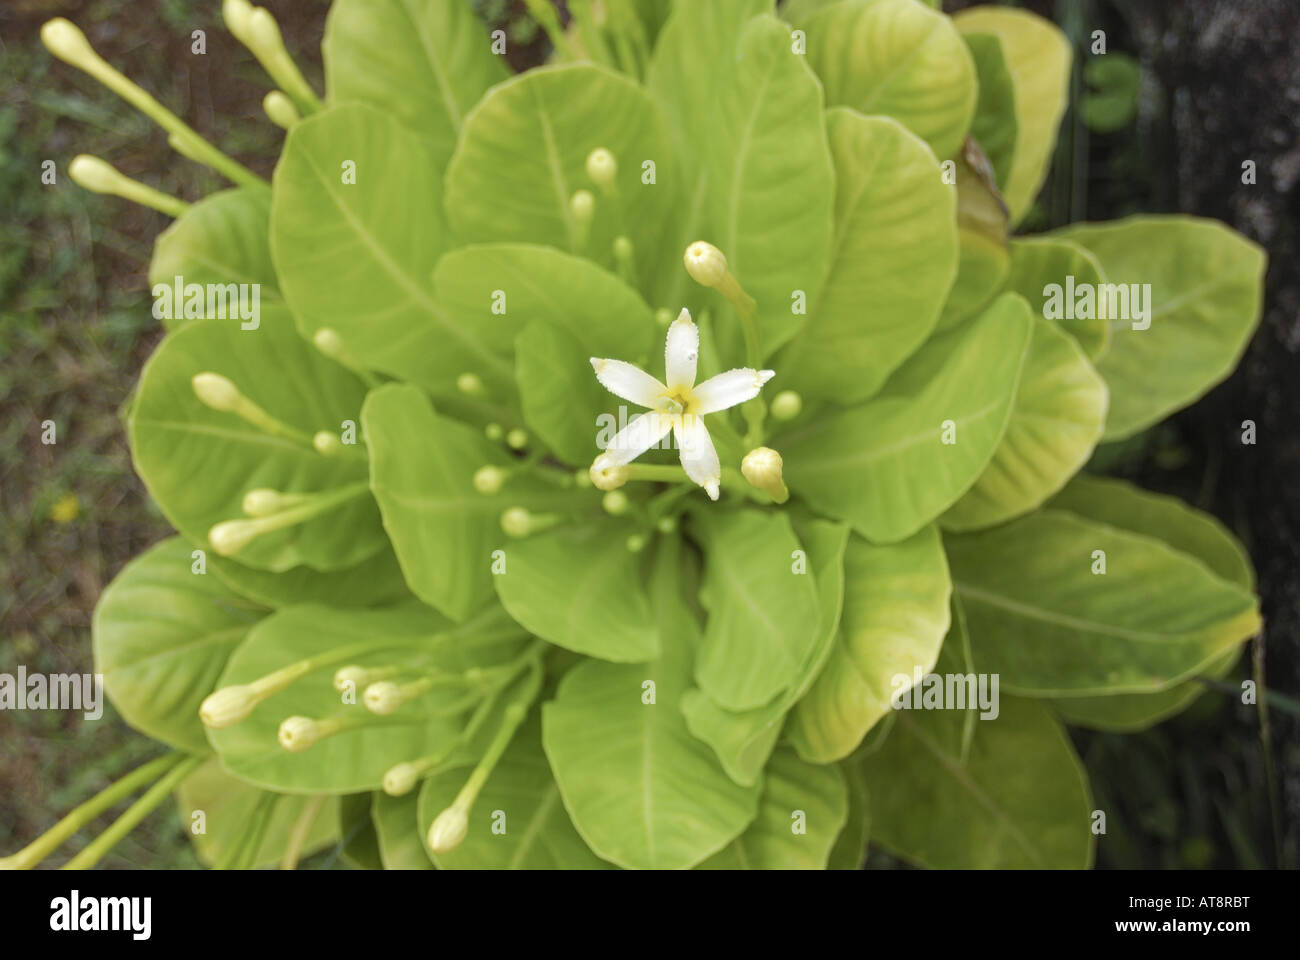 Alula Plant Stock Photos Alula Plant Stock Images Alamy